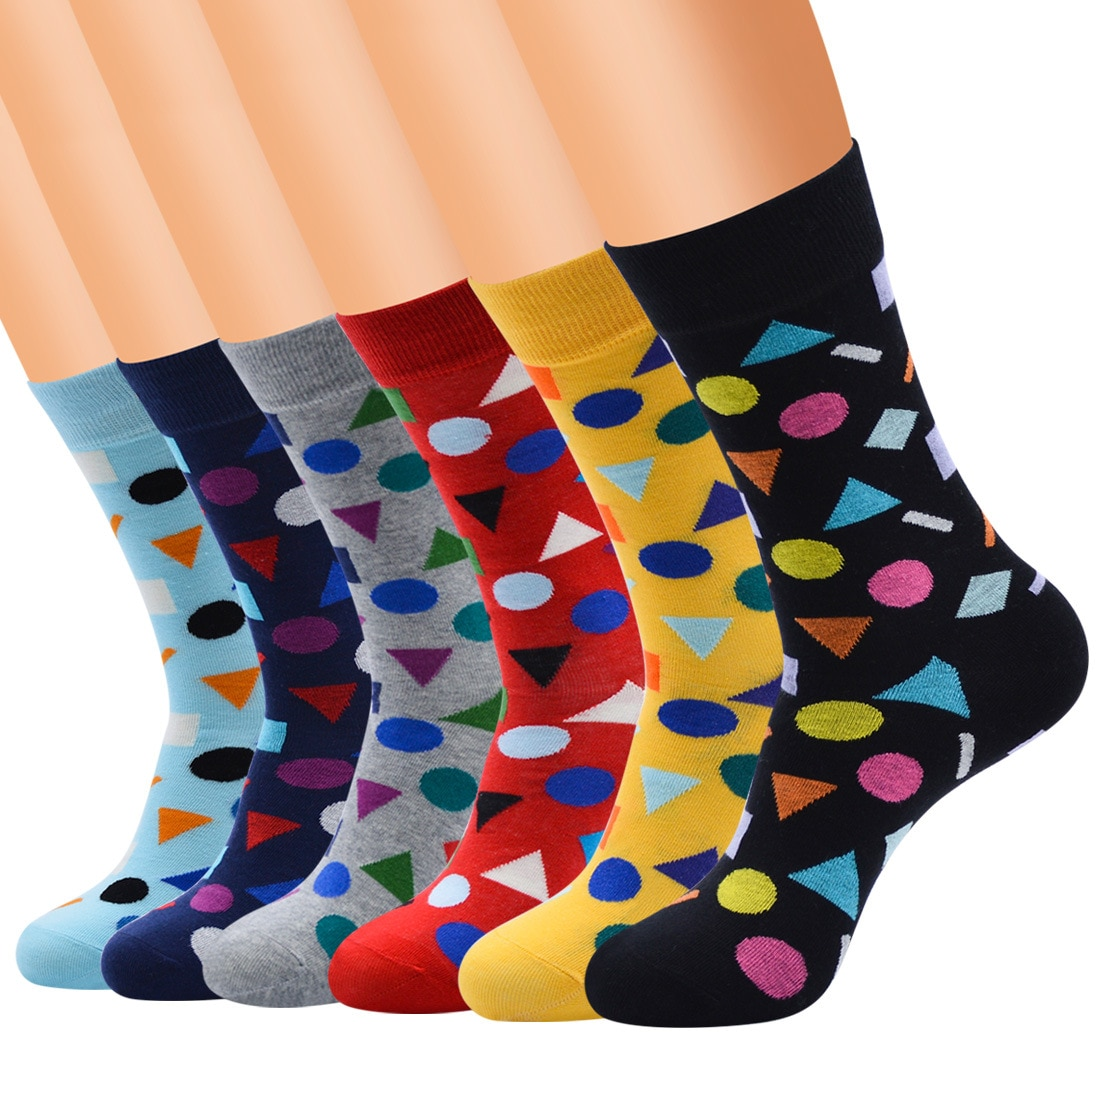 Unisex Modern New Fashion 4 Season Wearing Middle Tube Combed Cotton Geometric Pattern Socks  For Teen Girls And Boys